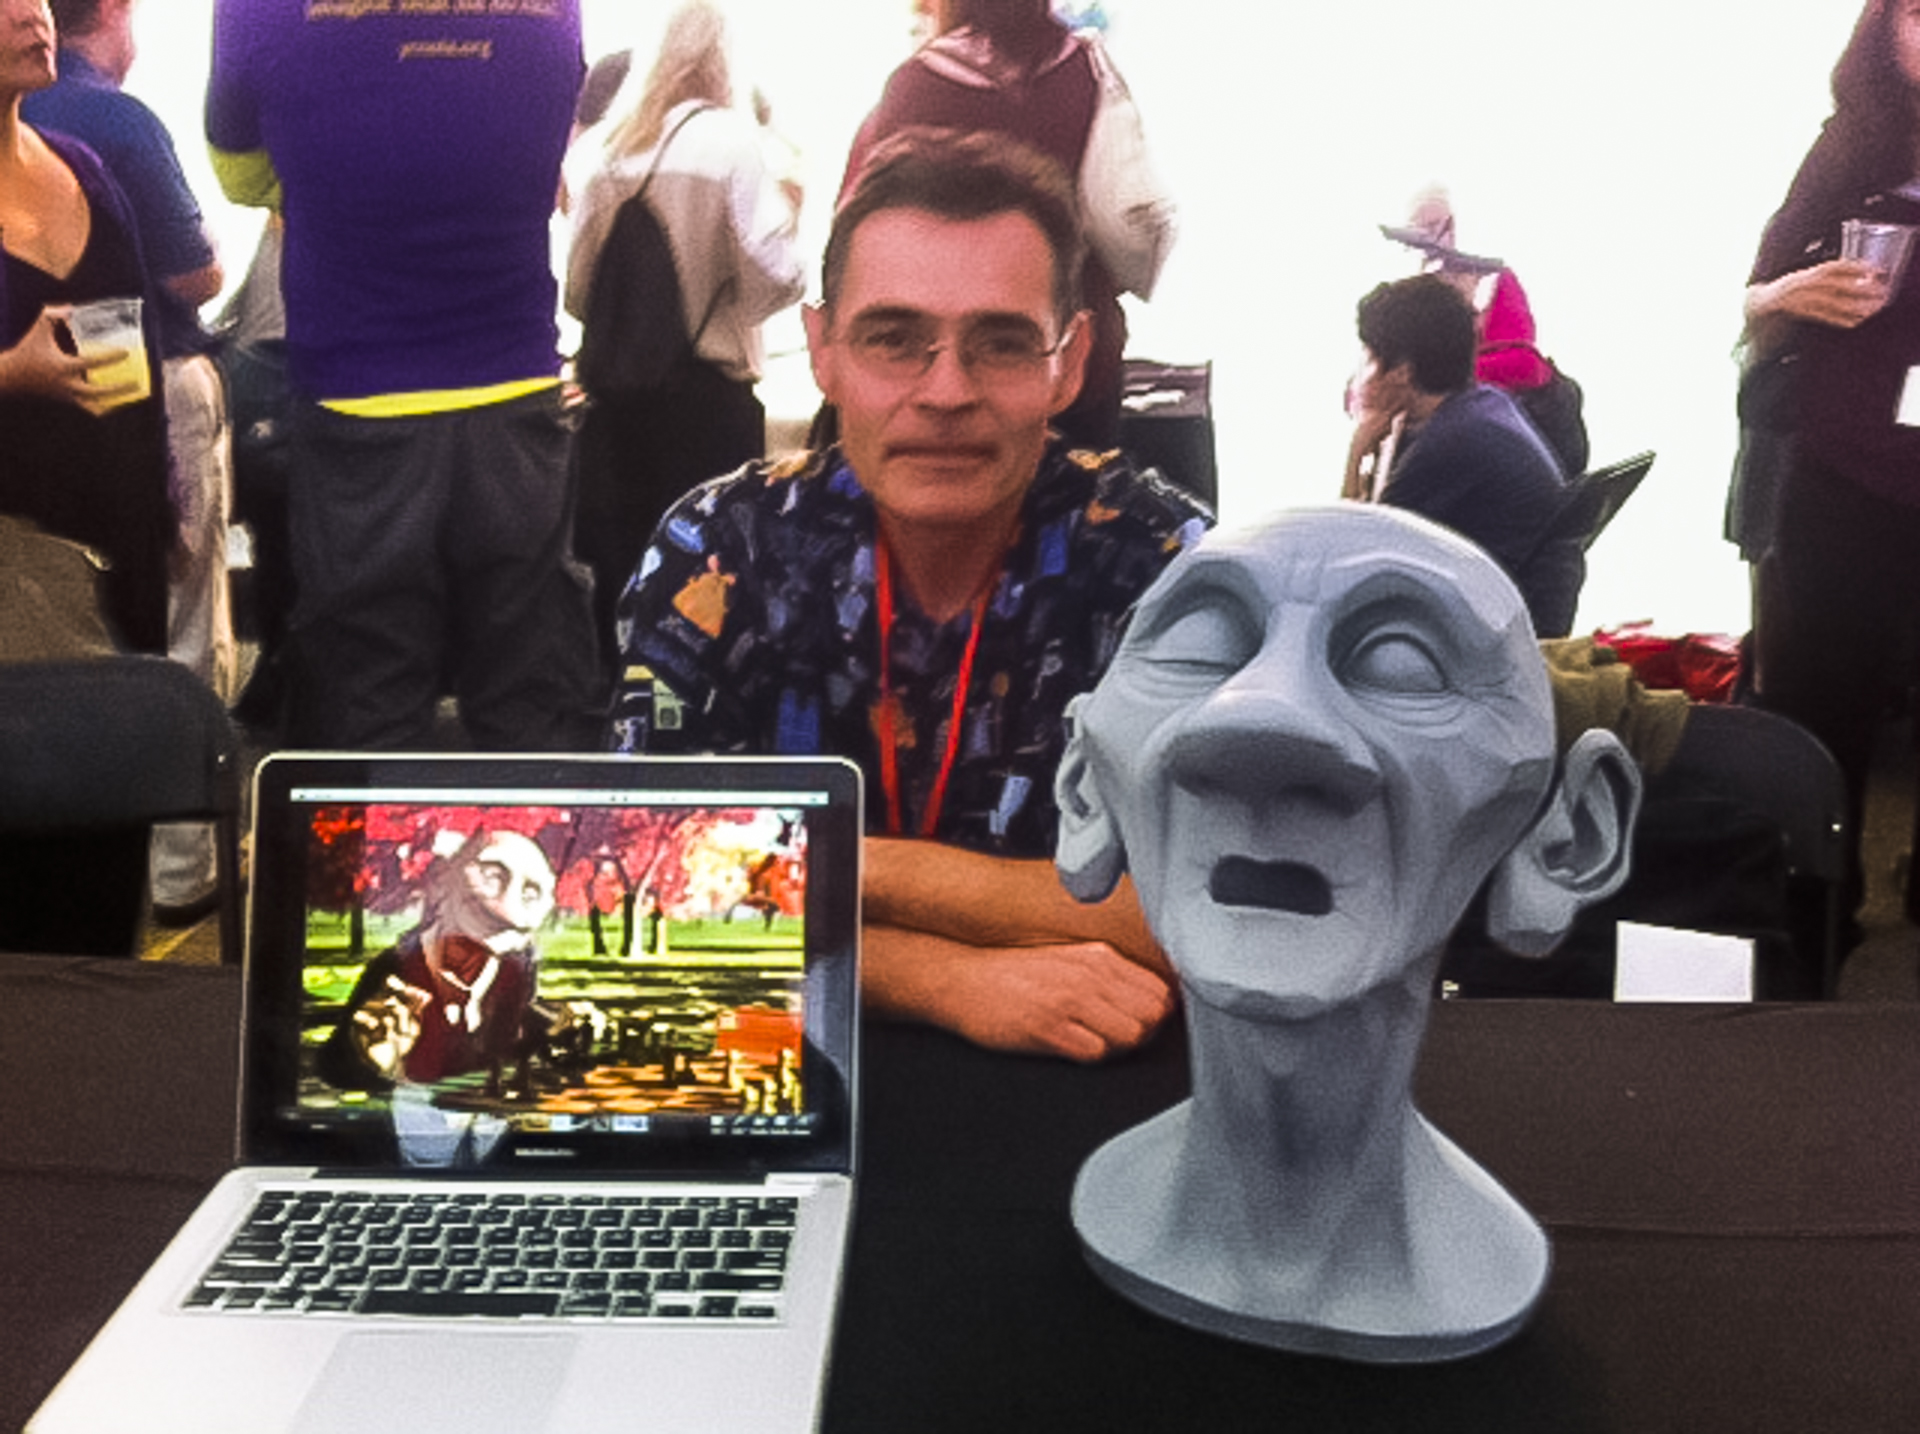 """Attendee Sevanah Howard shot this image of Tony DeRose, a Senior Scientist at Pixar Animation Studios. She explains, """"He designed this really cool model of the old man playing chess. It was amazing to see what he could do with animation."""" Photo: Sevanah Howard"""